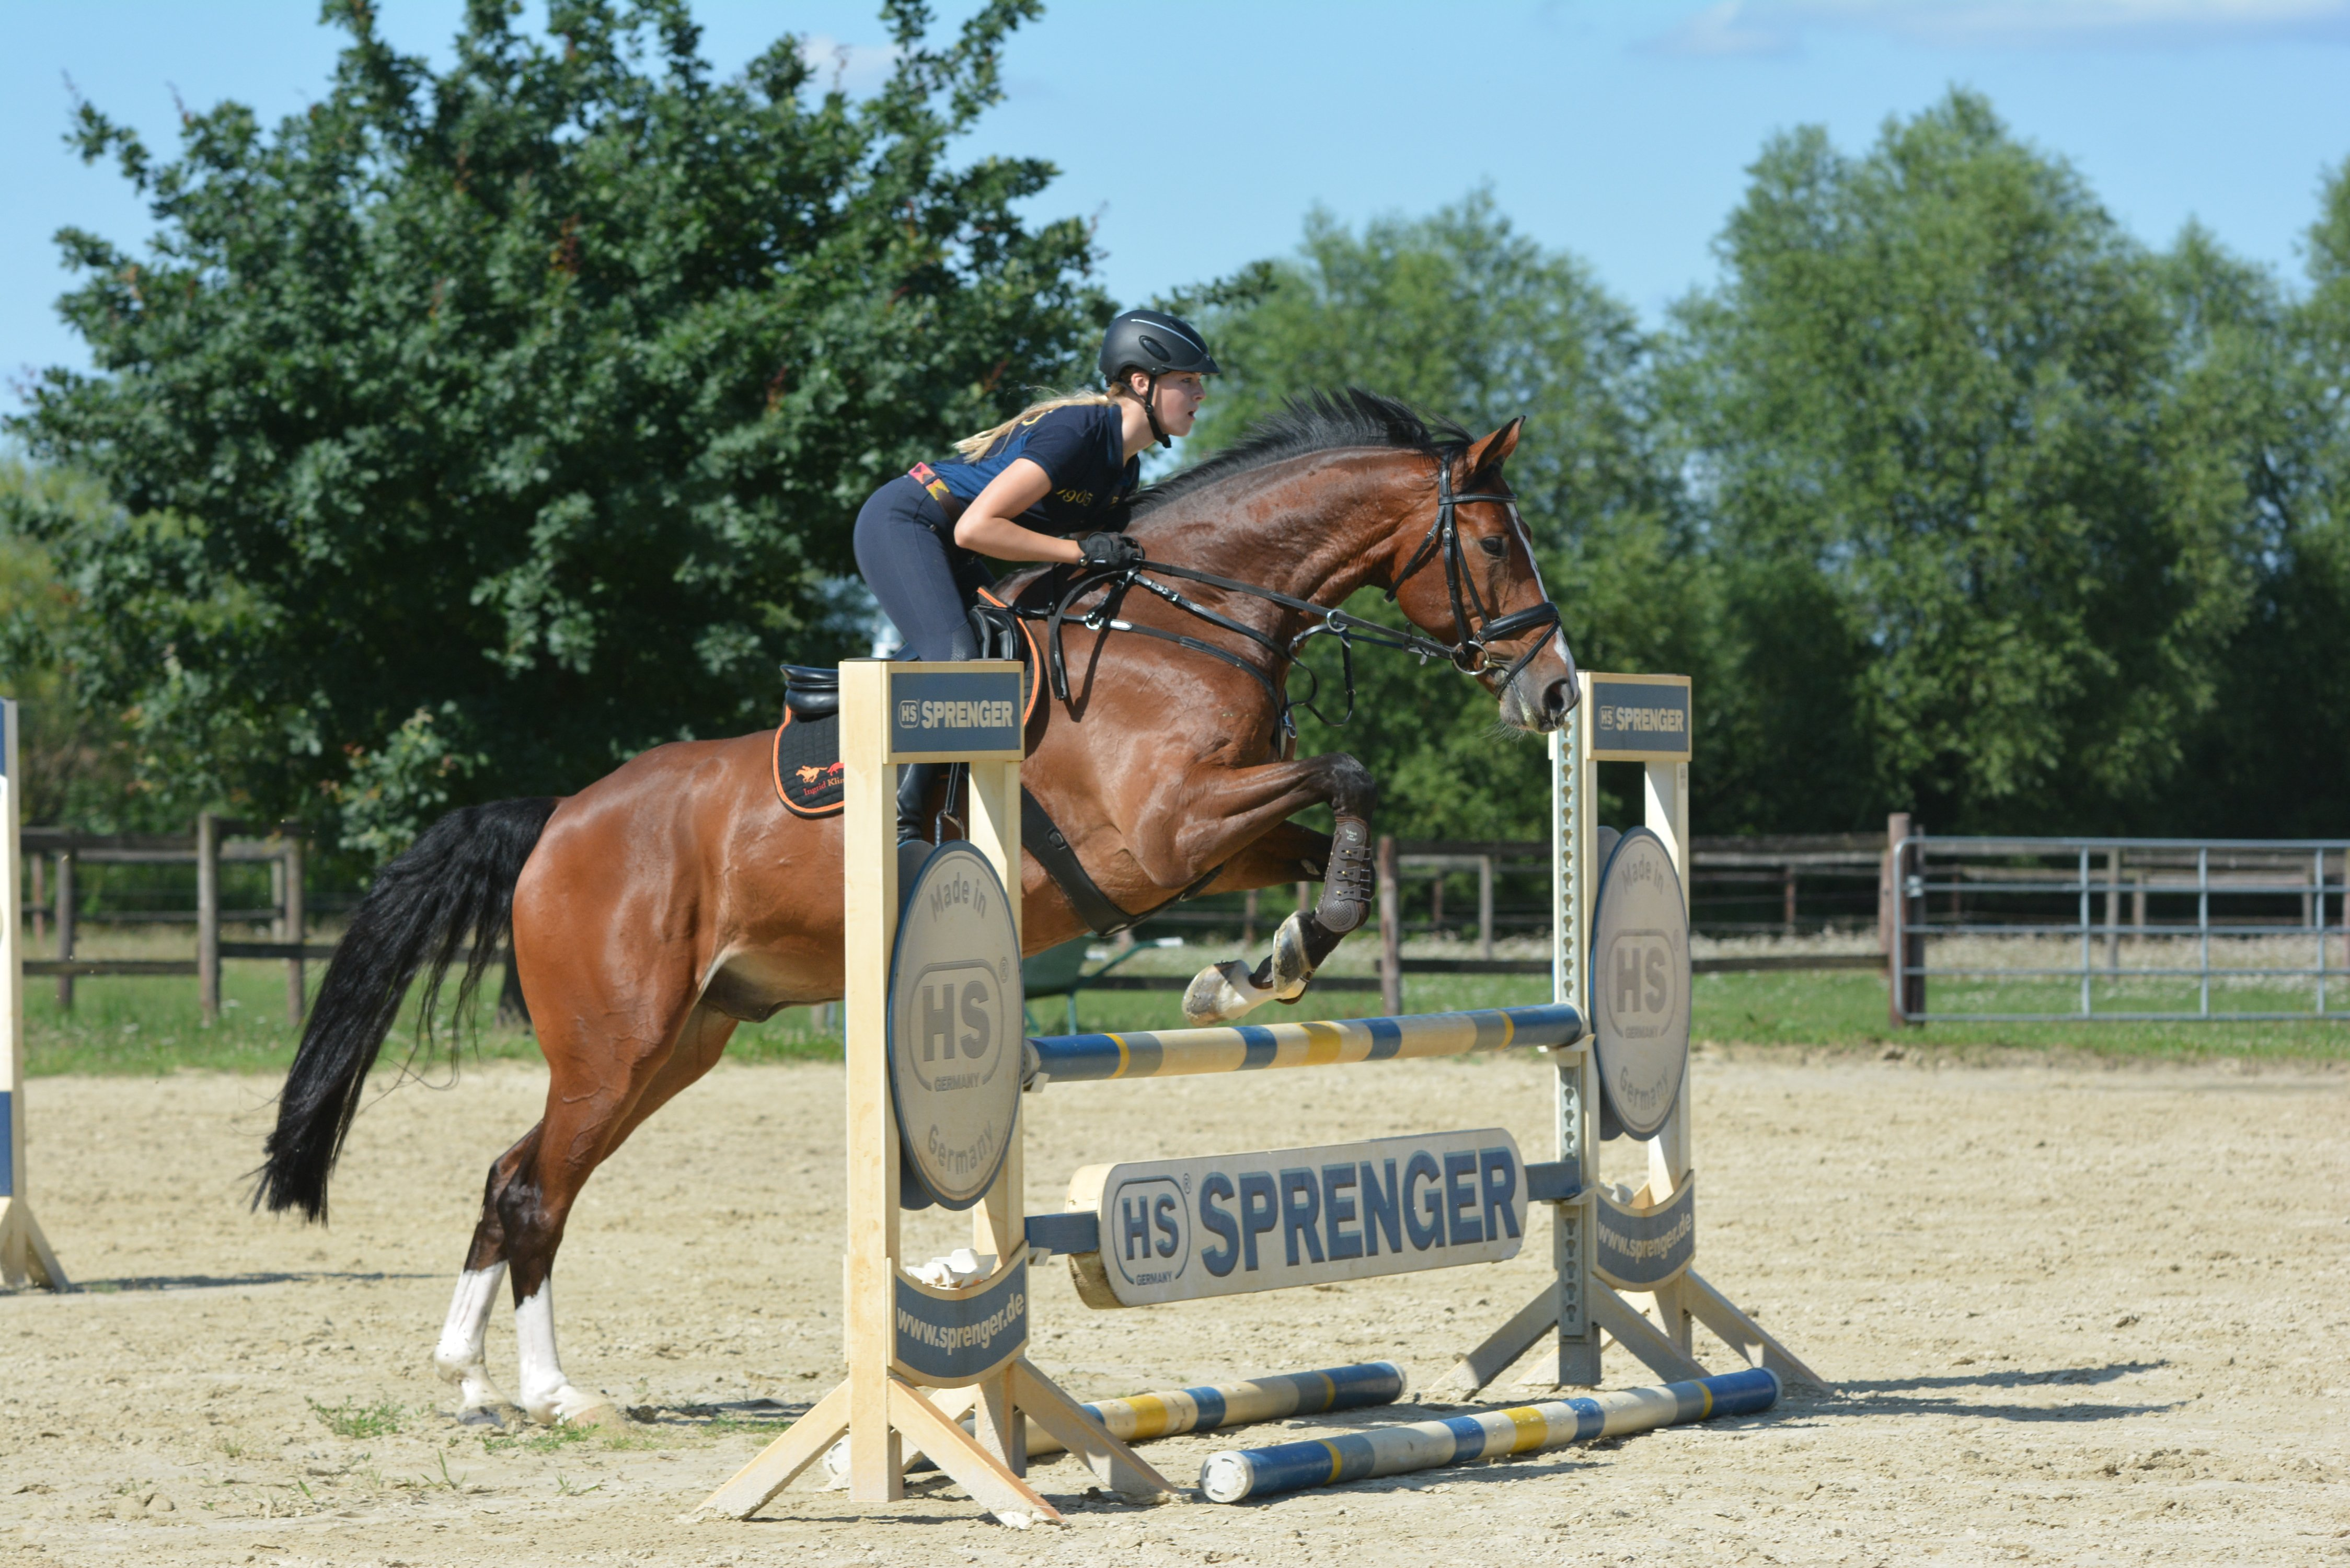 Ready For Showjumping Those Jumping Exercises Are Great For Your Horse